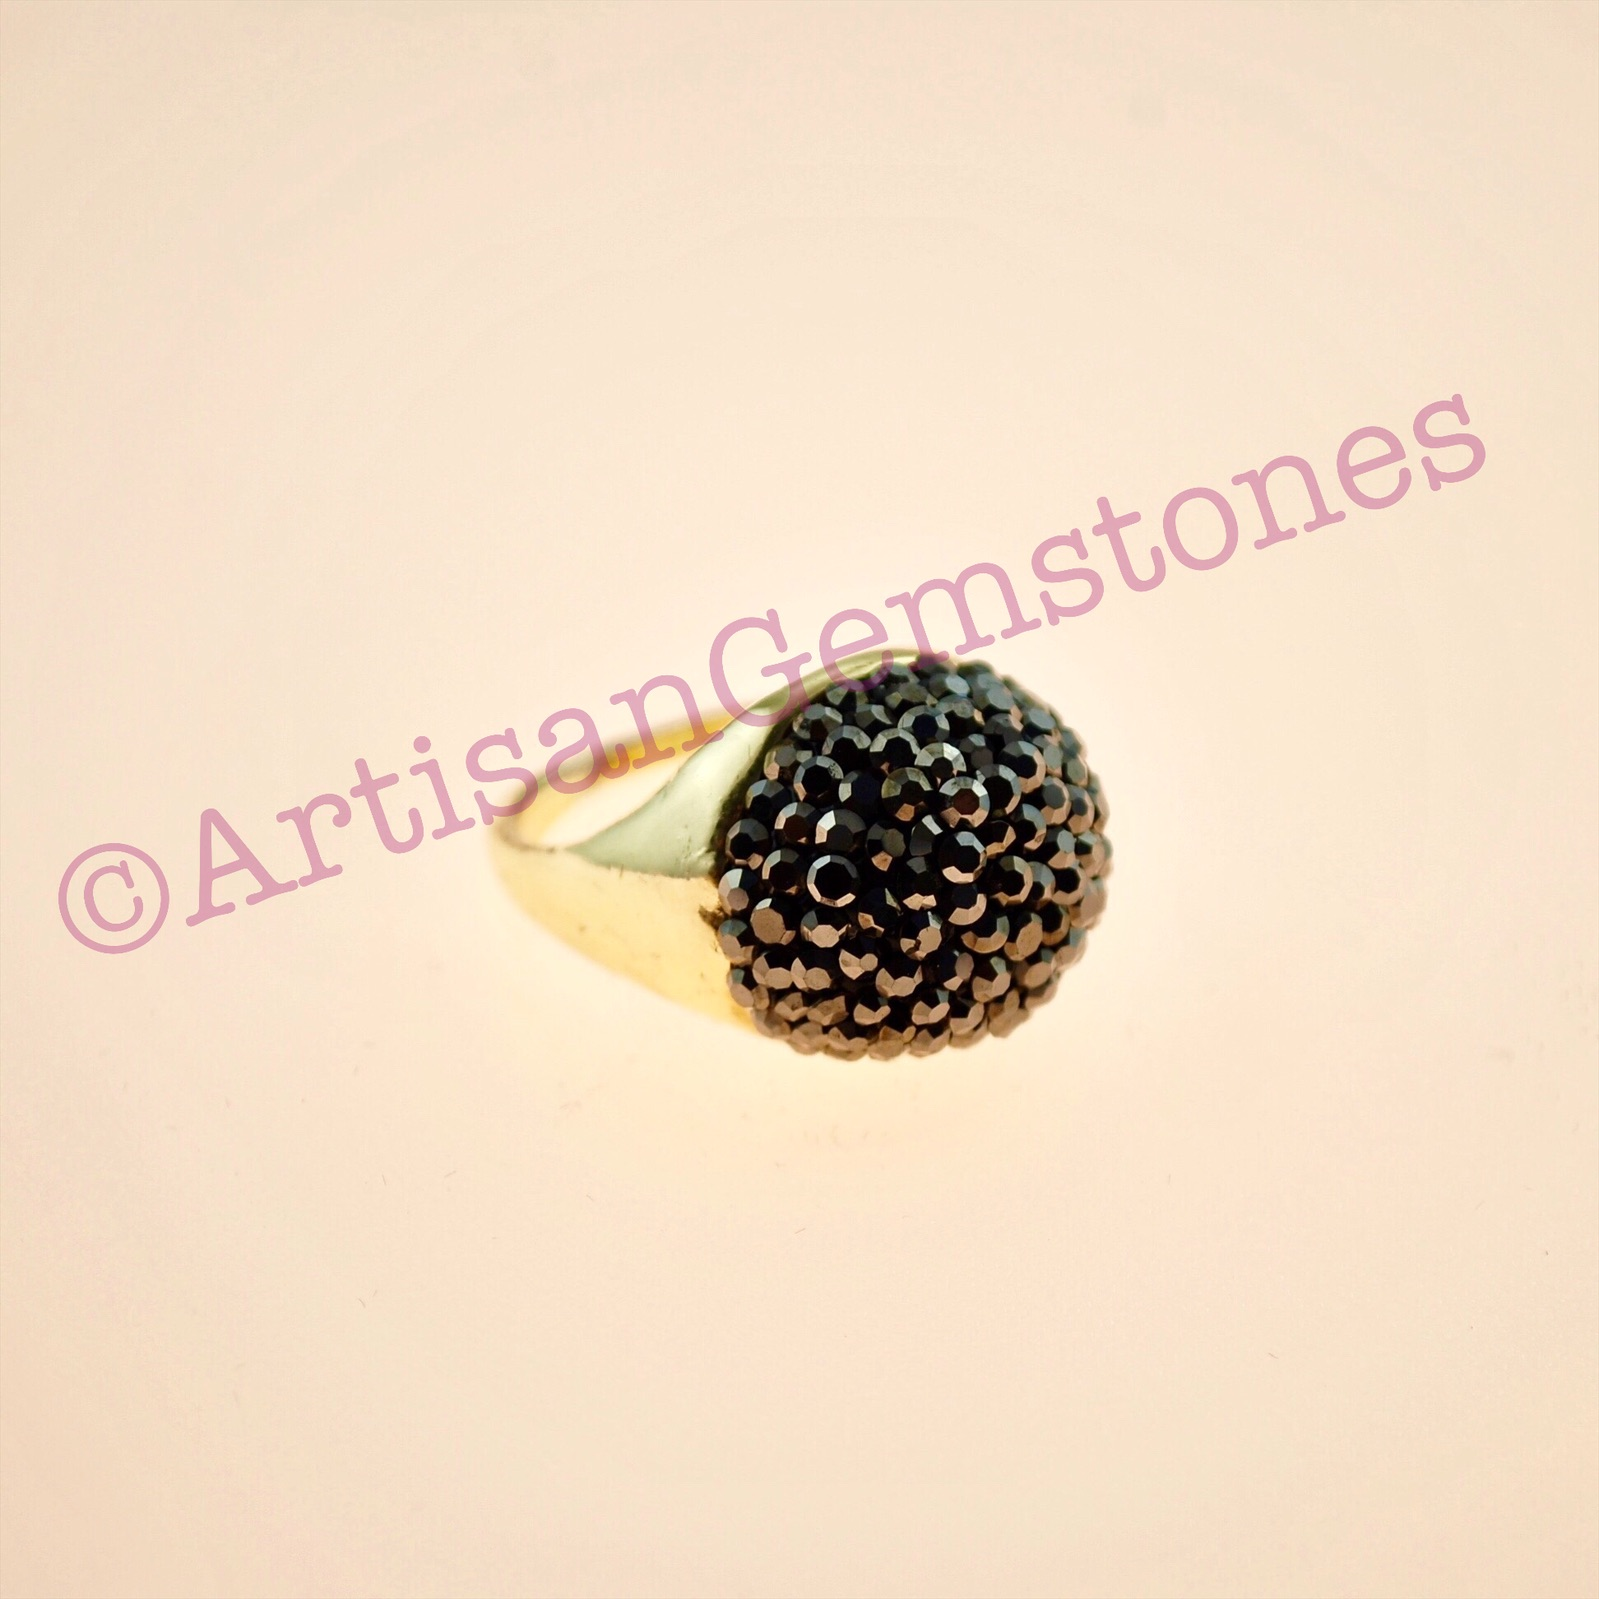 Black and gold 22k Gold vermeil ring in size 17 or Q